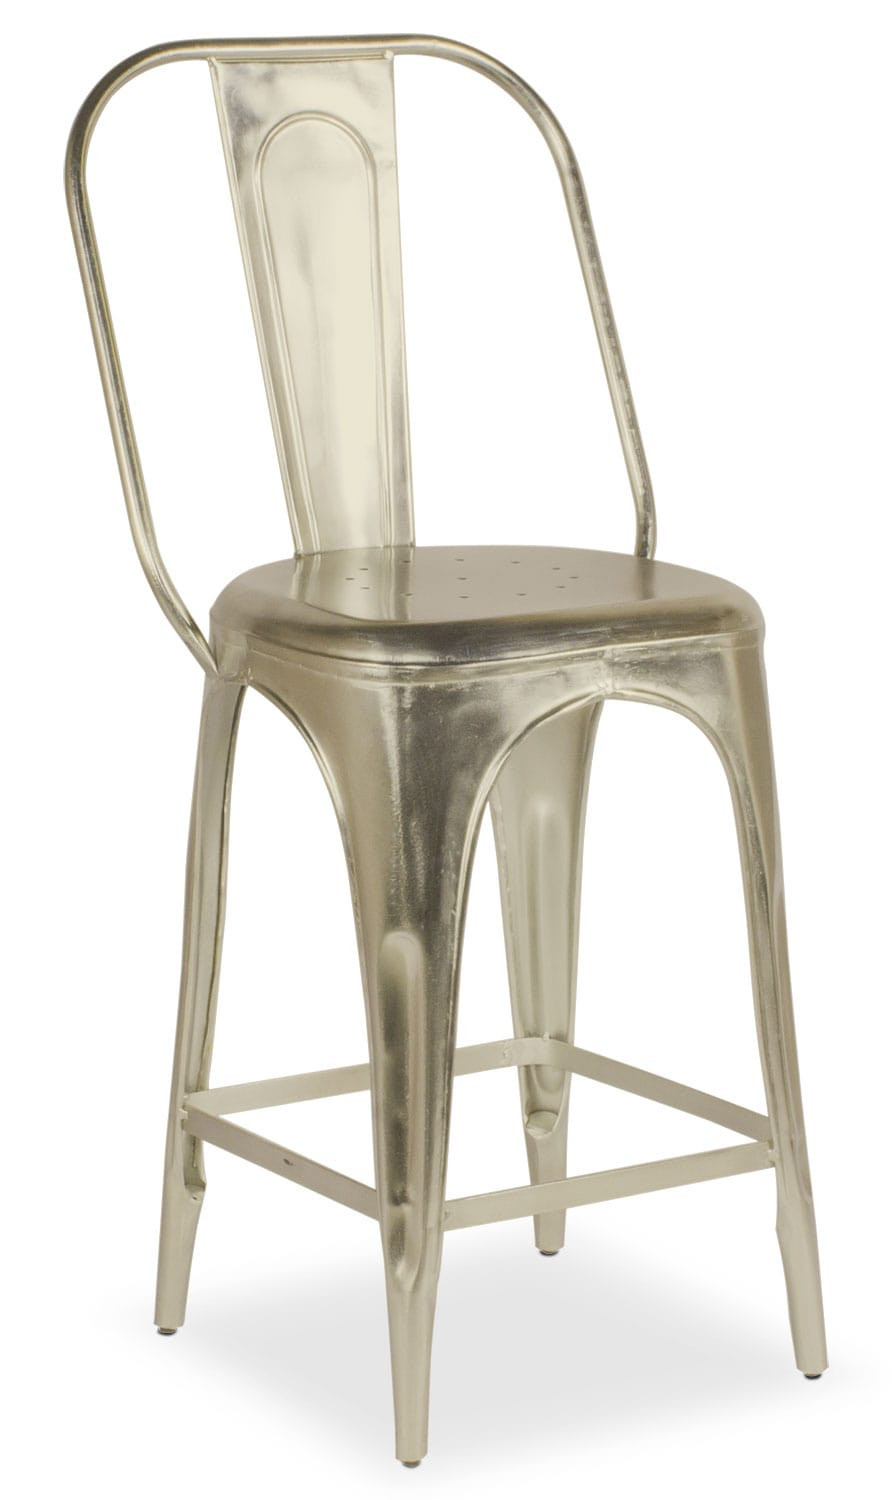 Dining Room Furniture - Holden Splat-Back Counter-Height Stool - Nickel